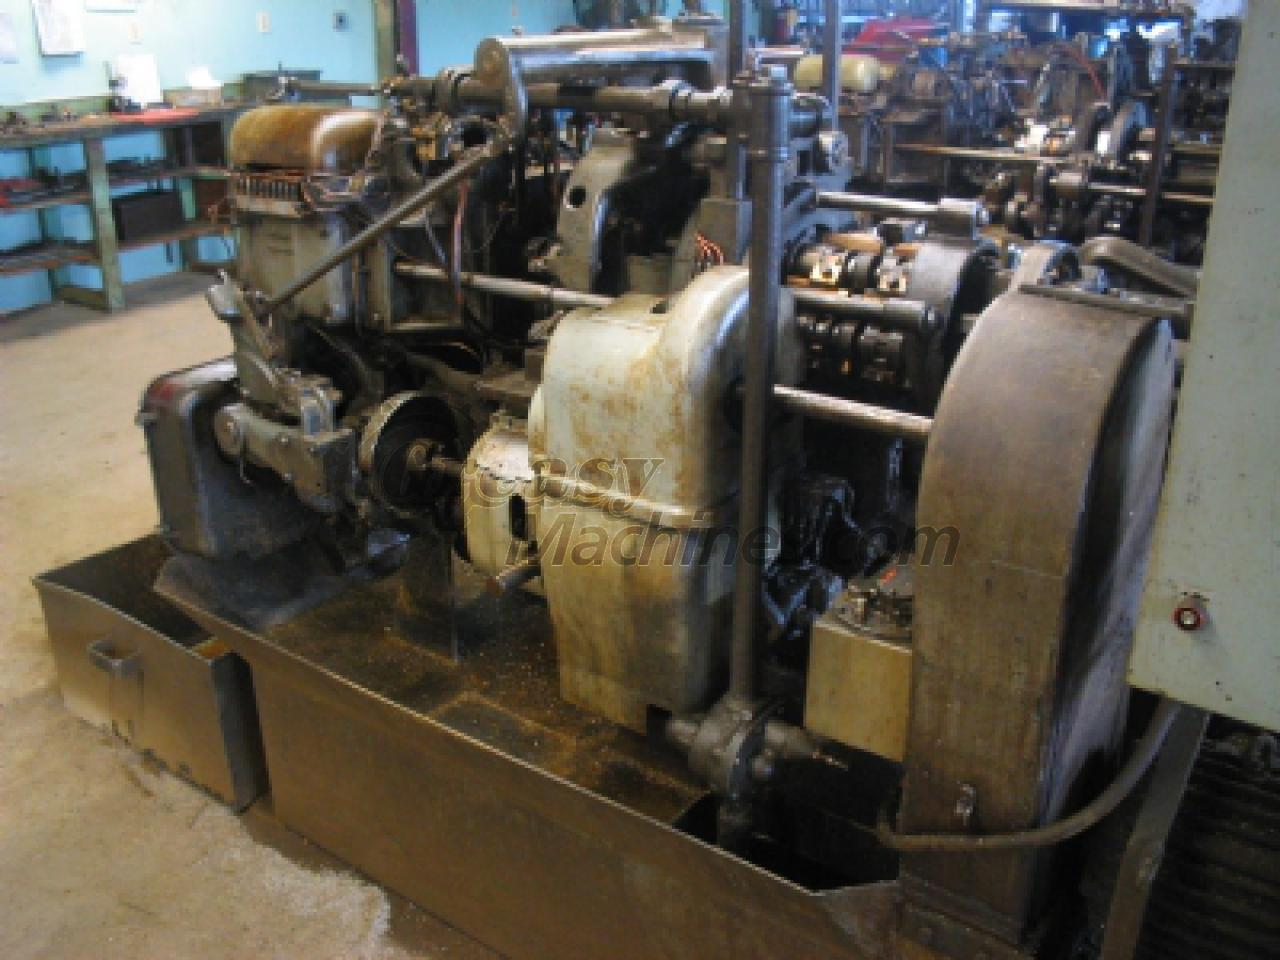 Davenport automatic screw machine, Model B, over size multi spindle.